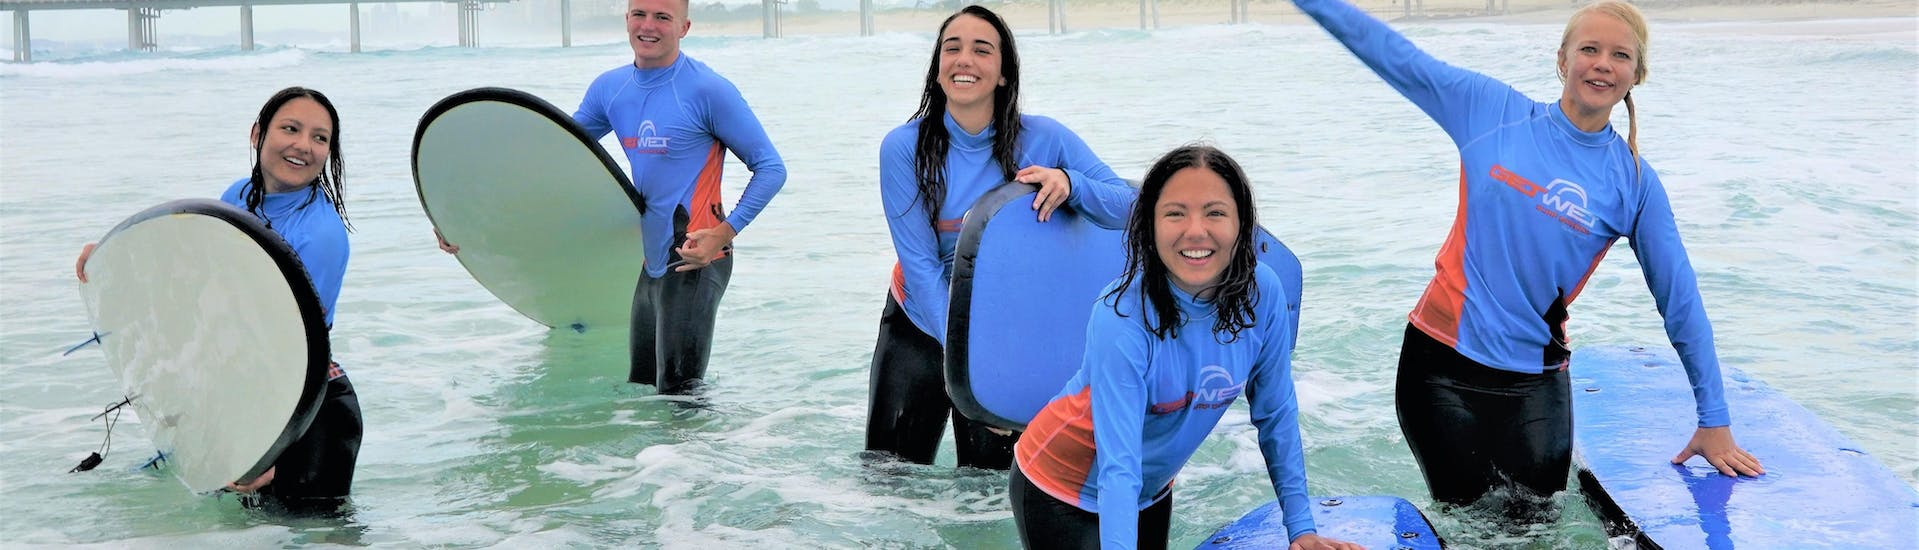 surf-lessons-in-gold-coast-for-adults-get-wet-surf-school